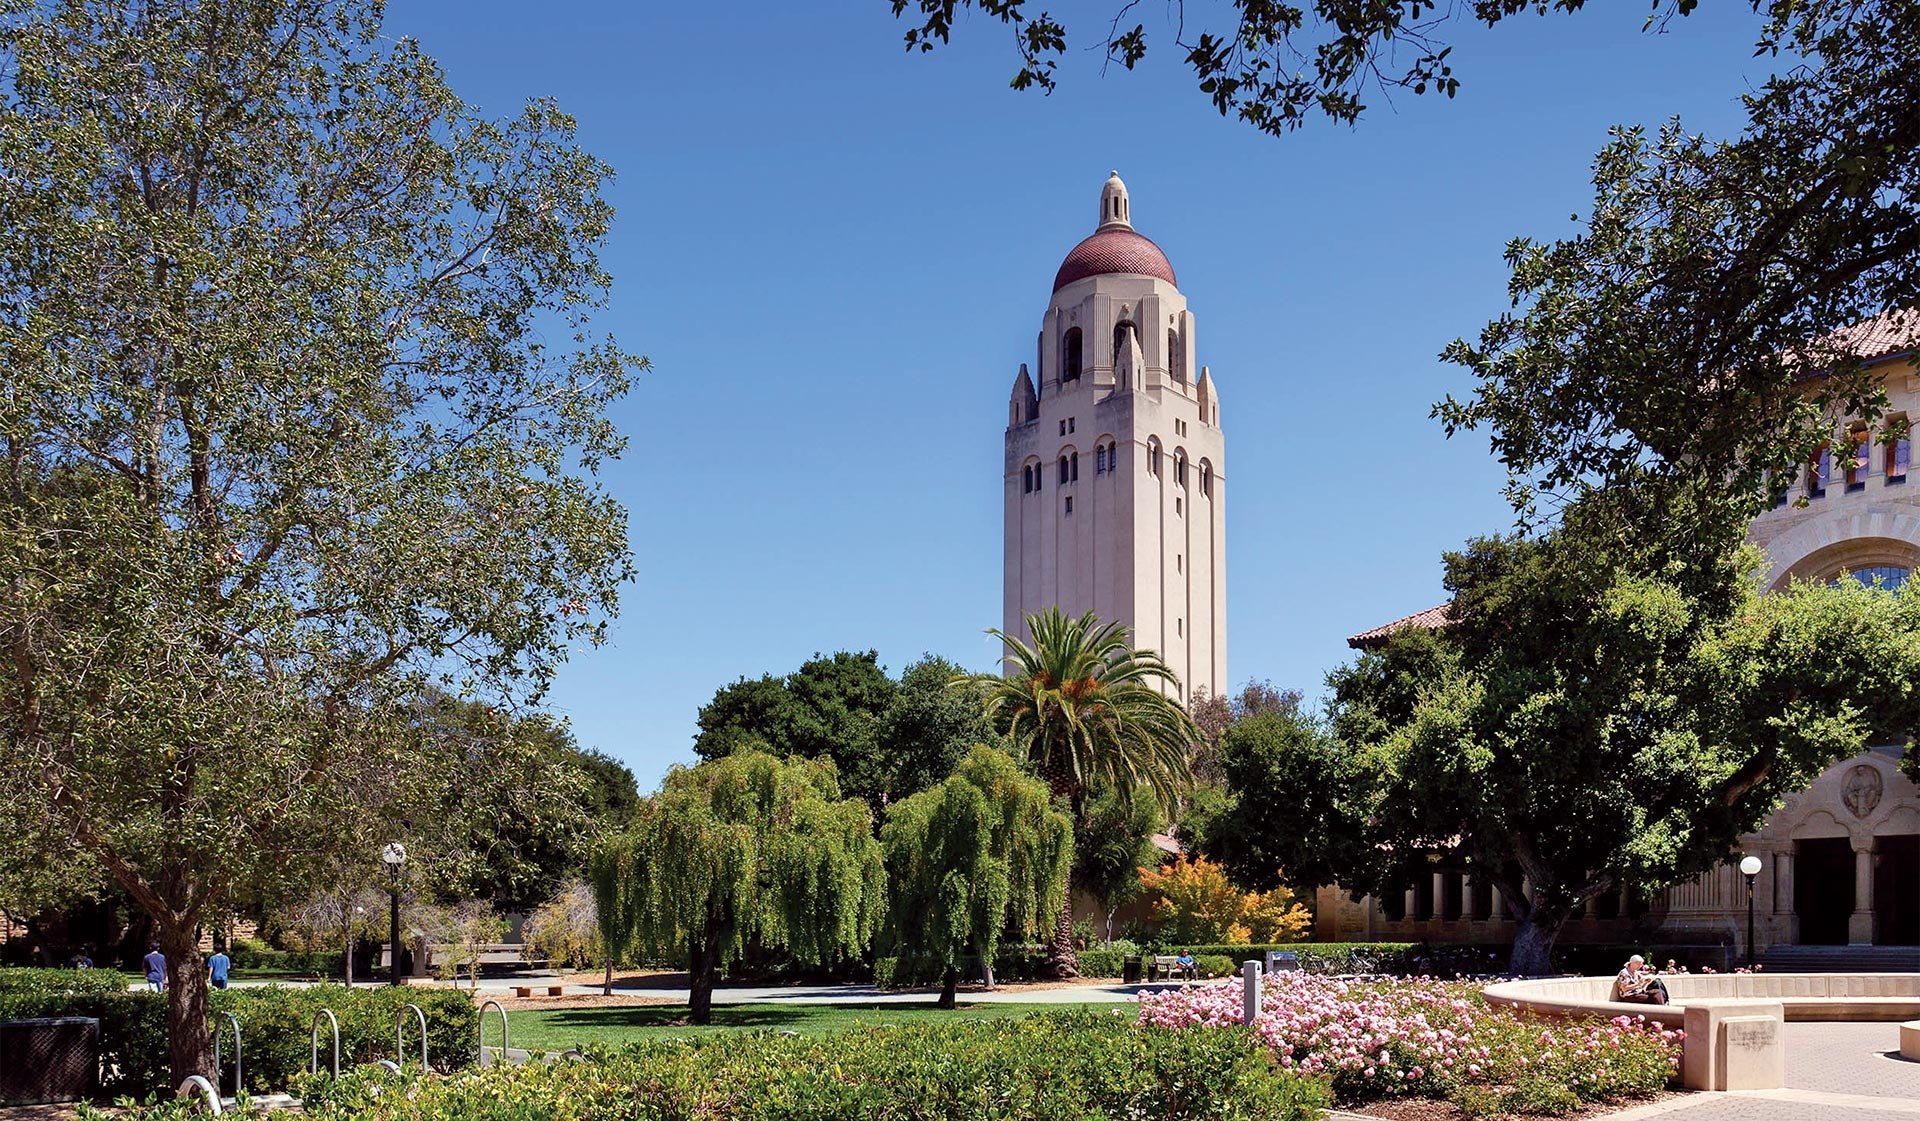 707 Leahy - Redwood City, CA - Standford University